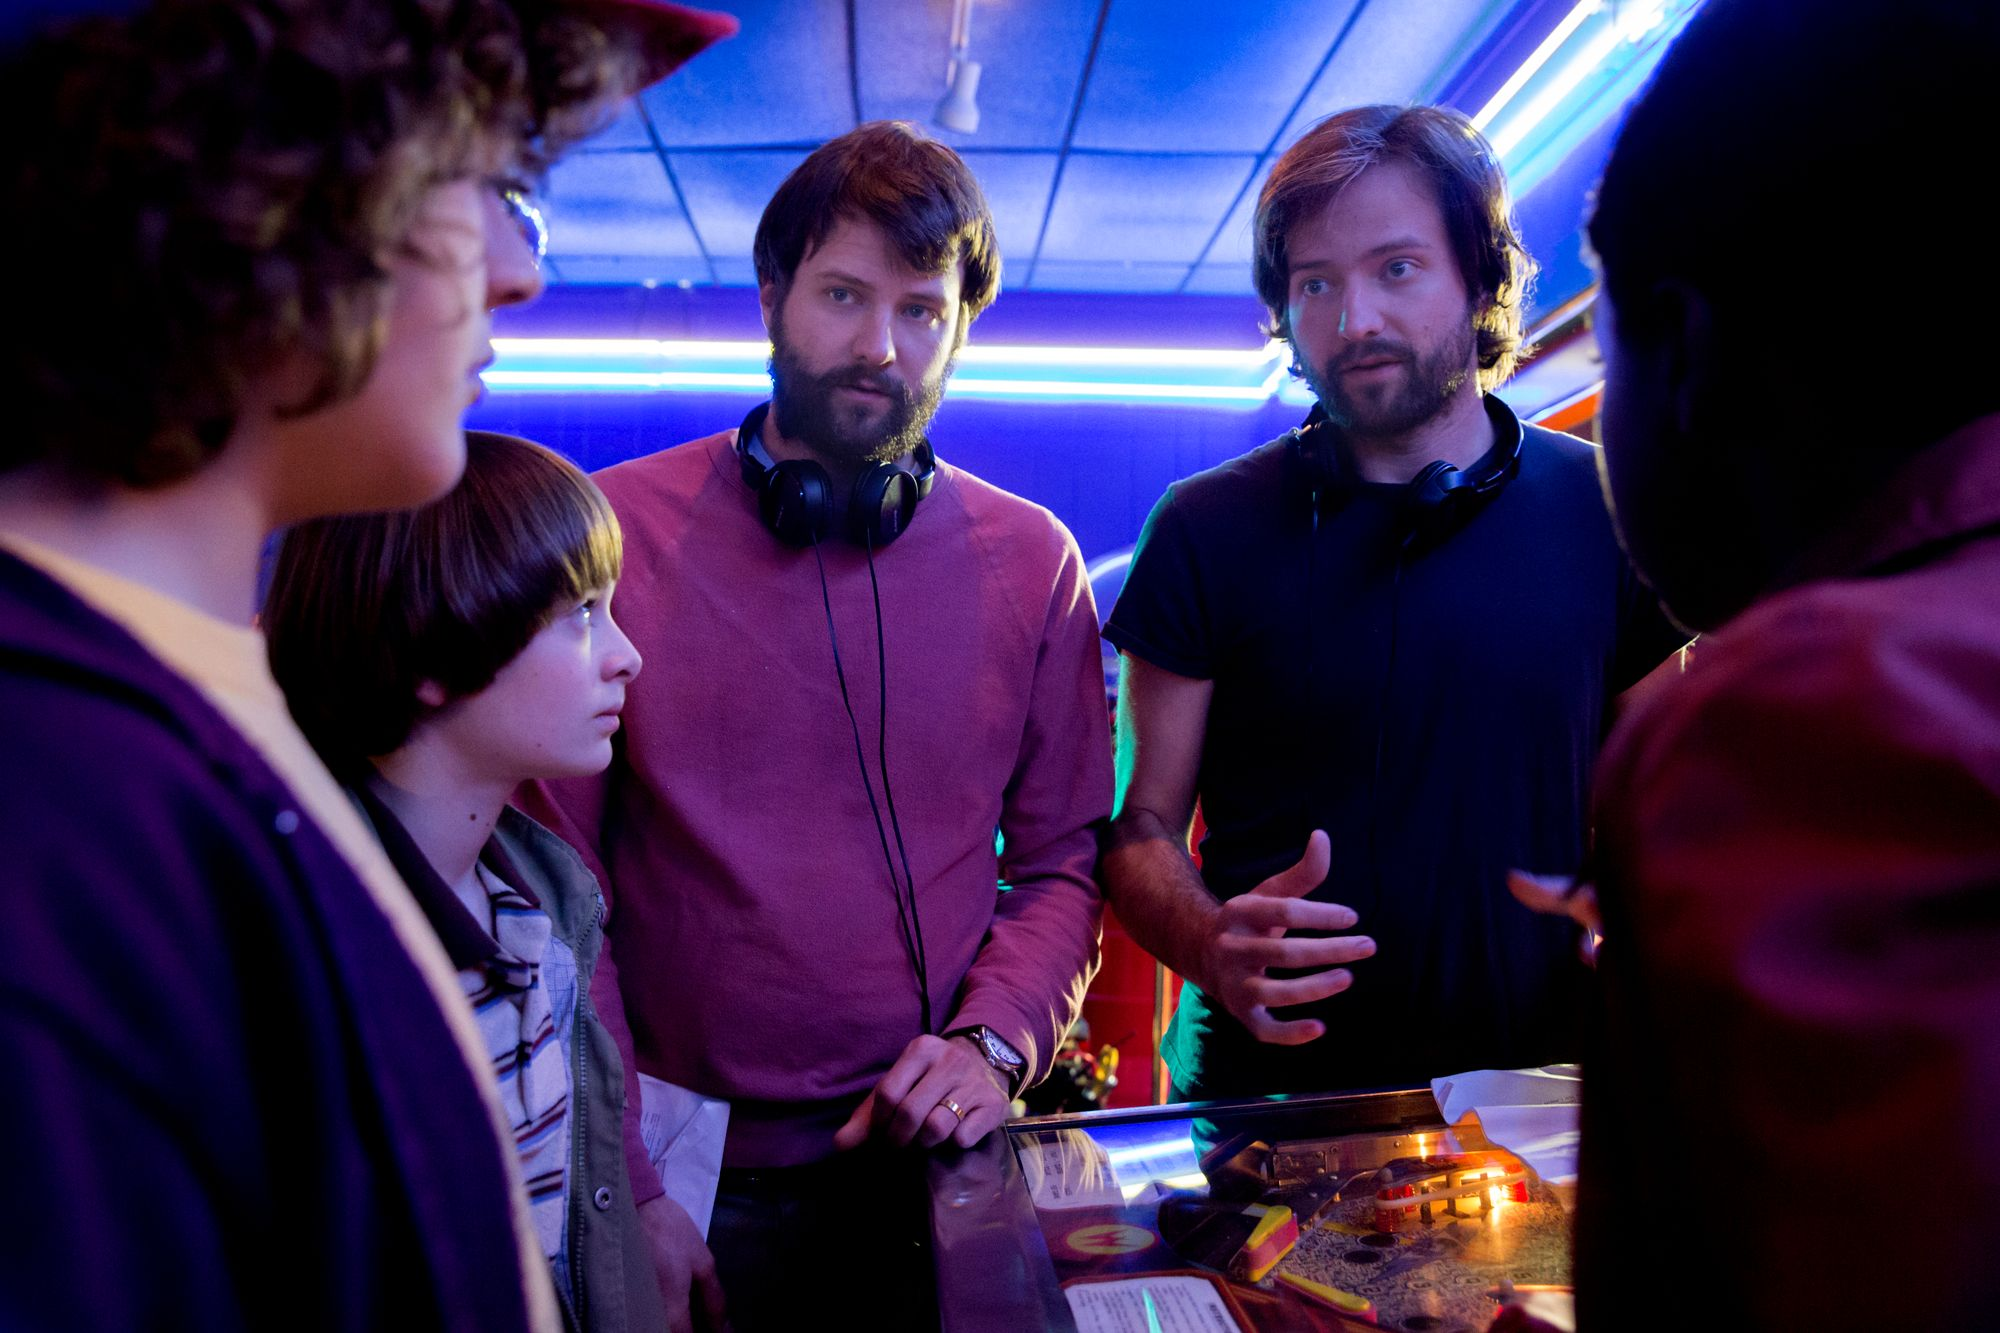 stranger things season 2 duffer brothers - Unique: No, the Duffer Brothers Are Not Leaving 'Stranger Things' After Season 3